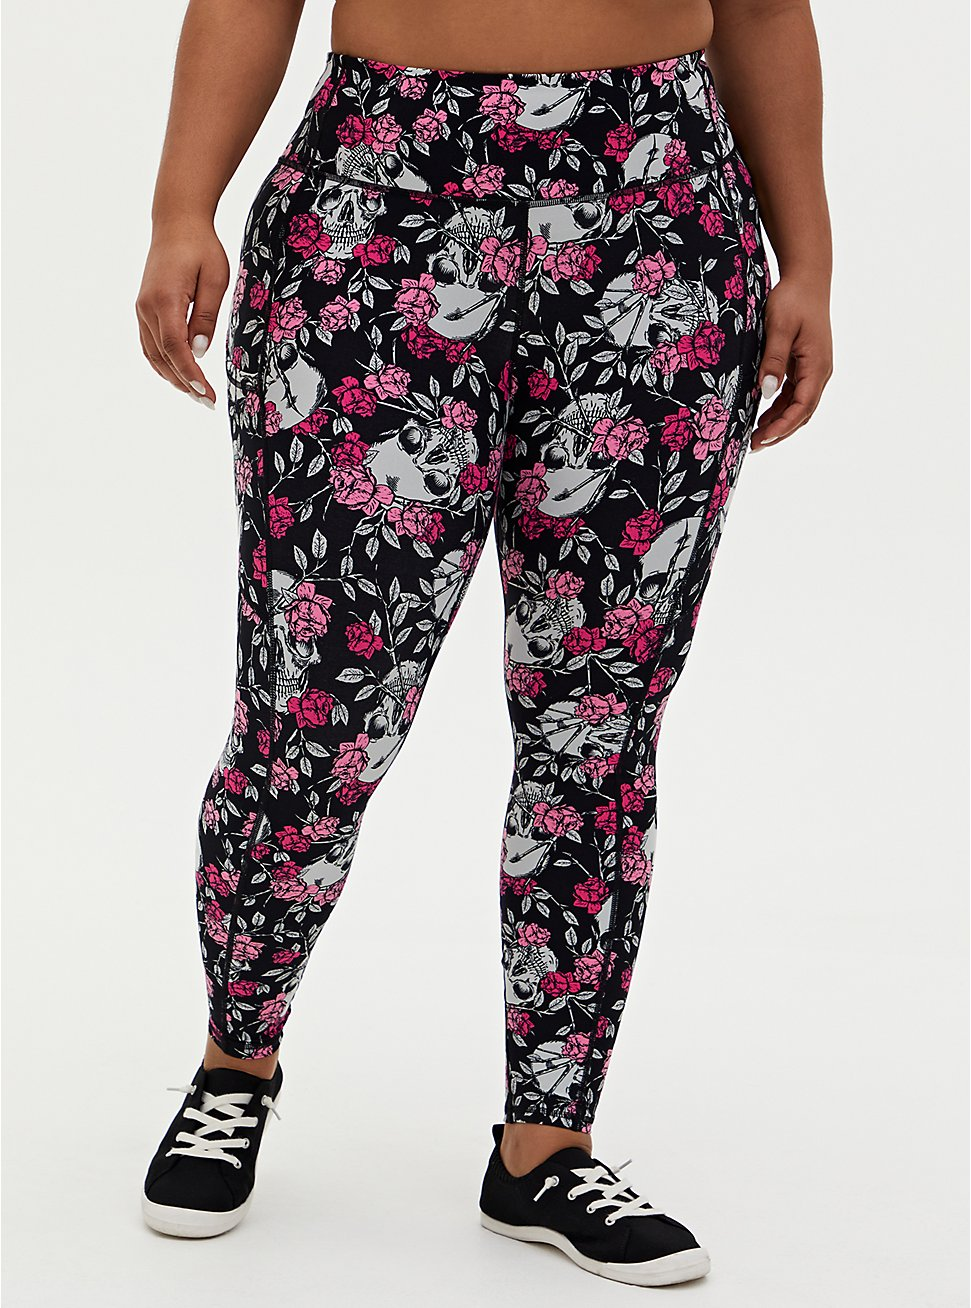 Black Floral Skull Wicking Active Legging With Pockets, FLORAL SKULL, hi-res